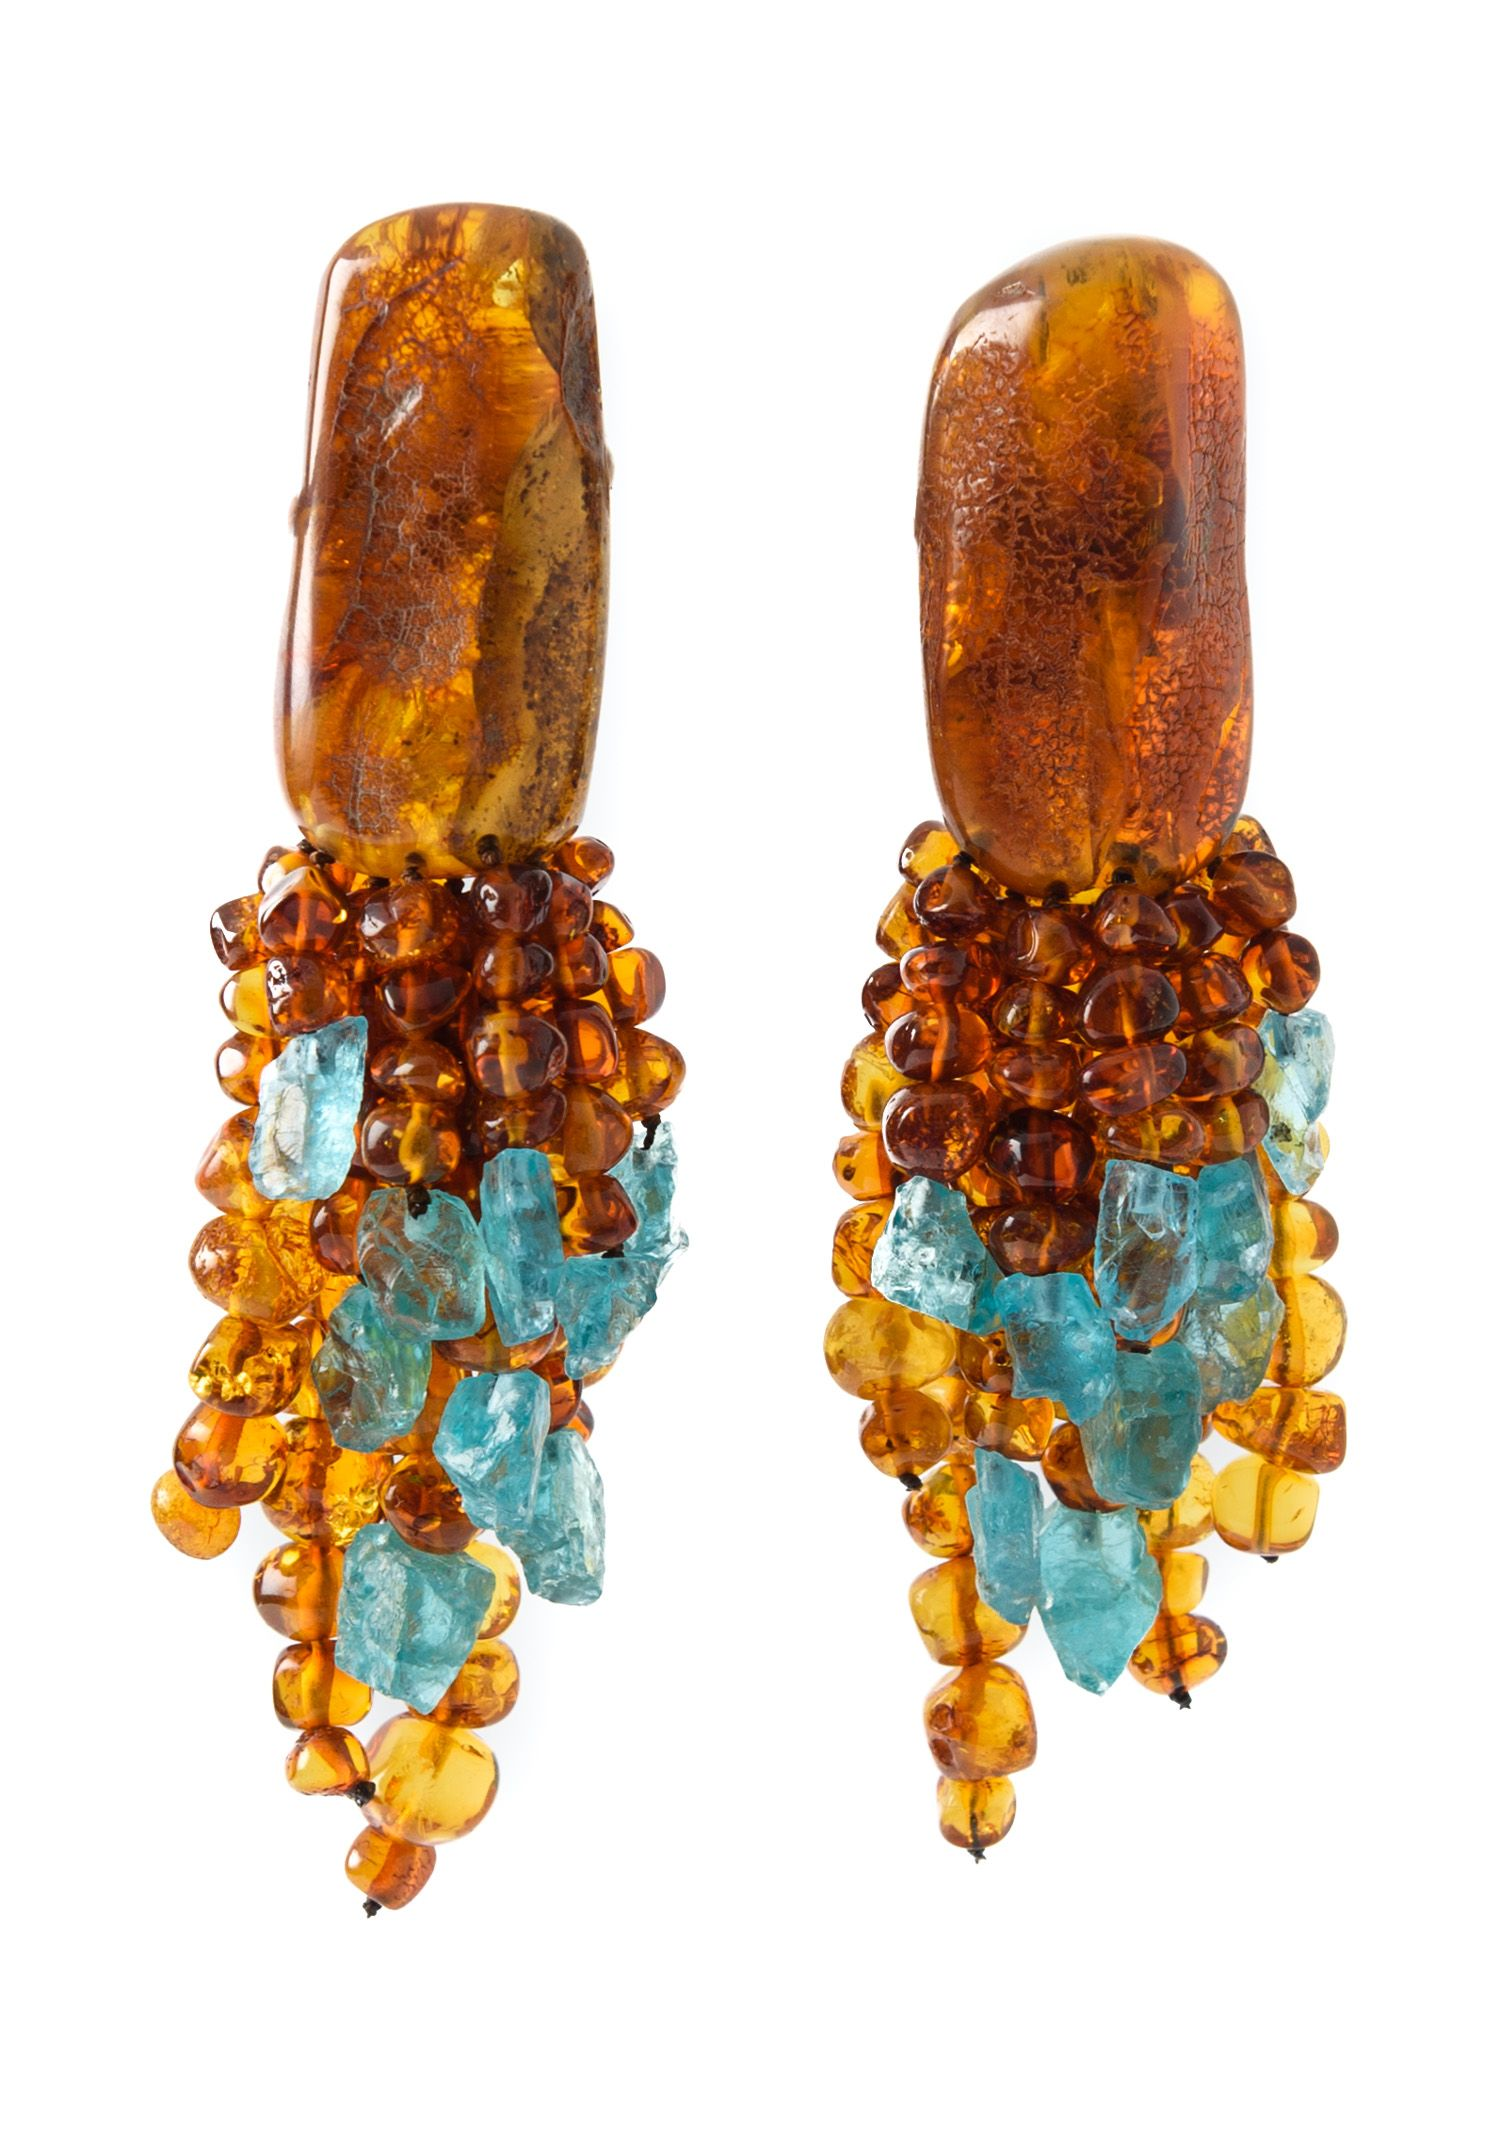 Monies, Danish Amber And Aquamarine Earrings Outfits, Outfit Ideas, Outfit  Accessories, Cute Accessories